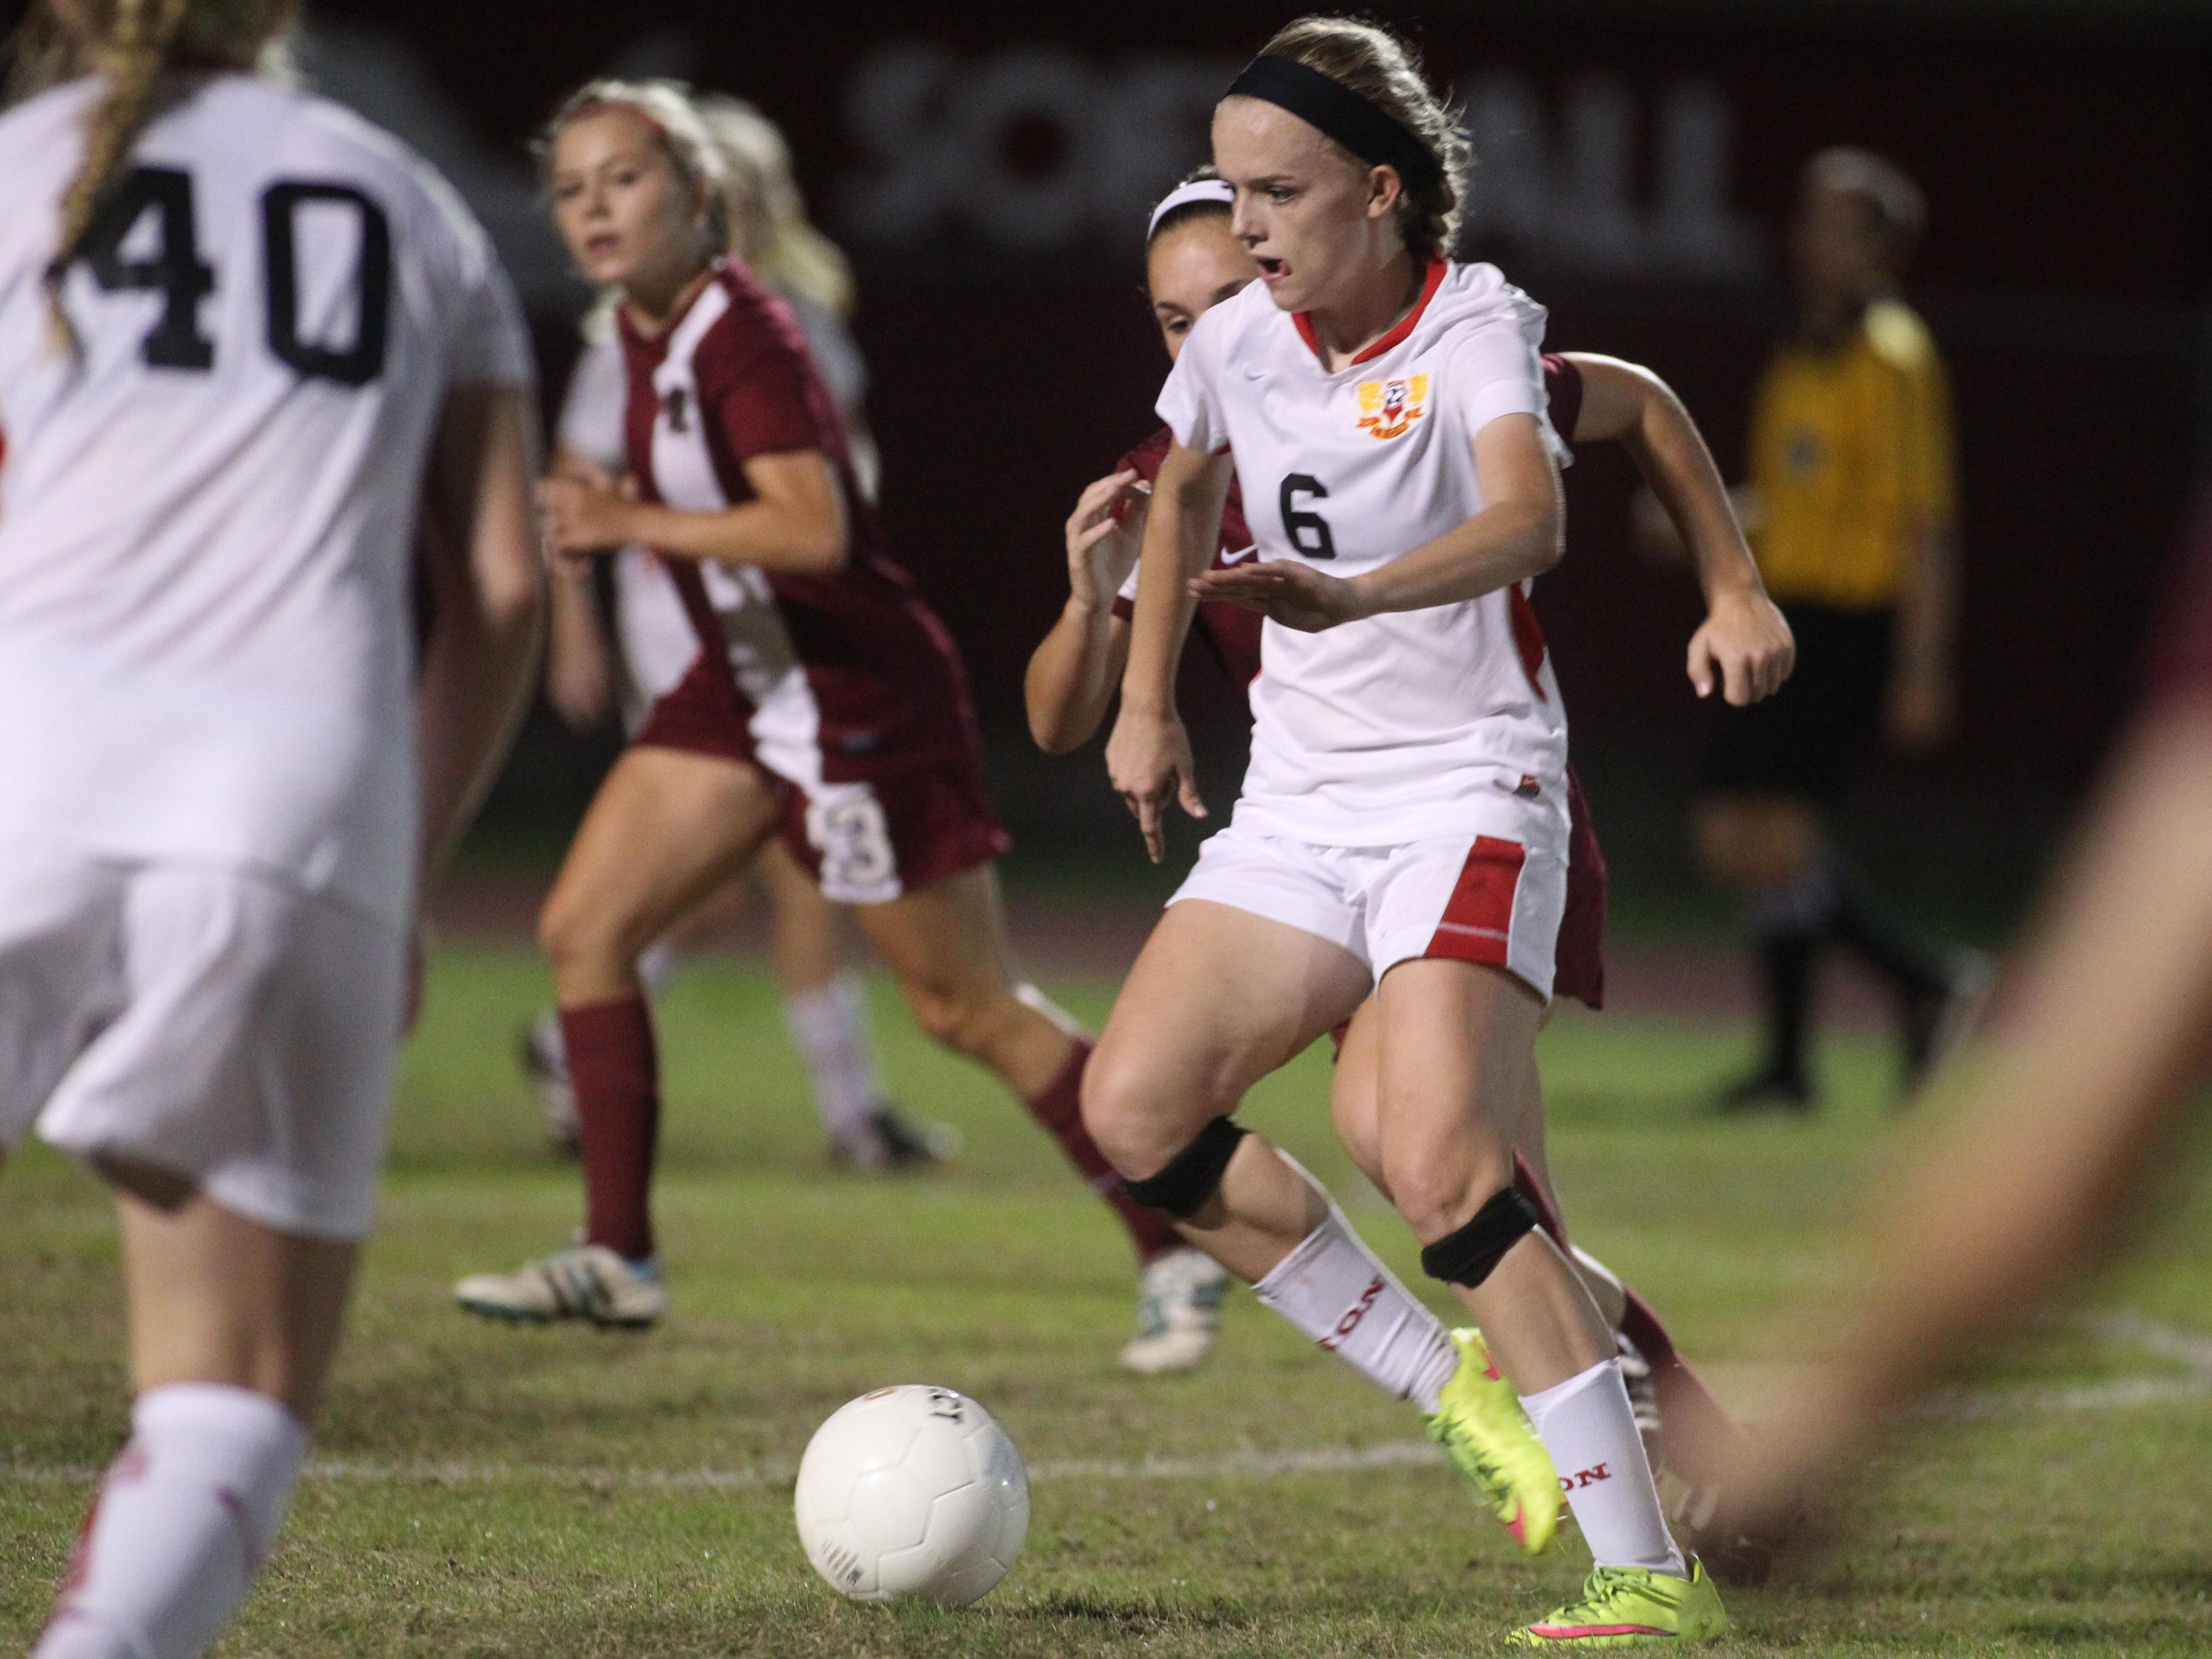 Leon sophomore Maddie Powell's role has changed from forward to midfielder this season, but she still managed to score a goal during Tuesday night's 3-0 win over Chiles.